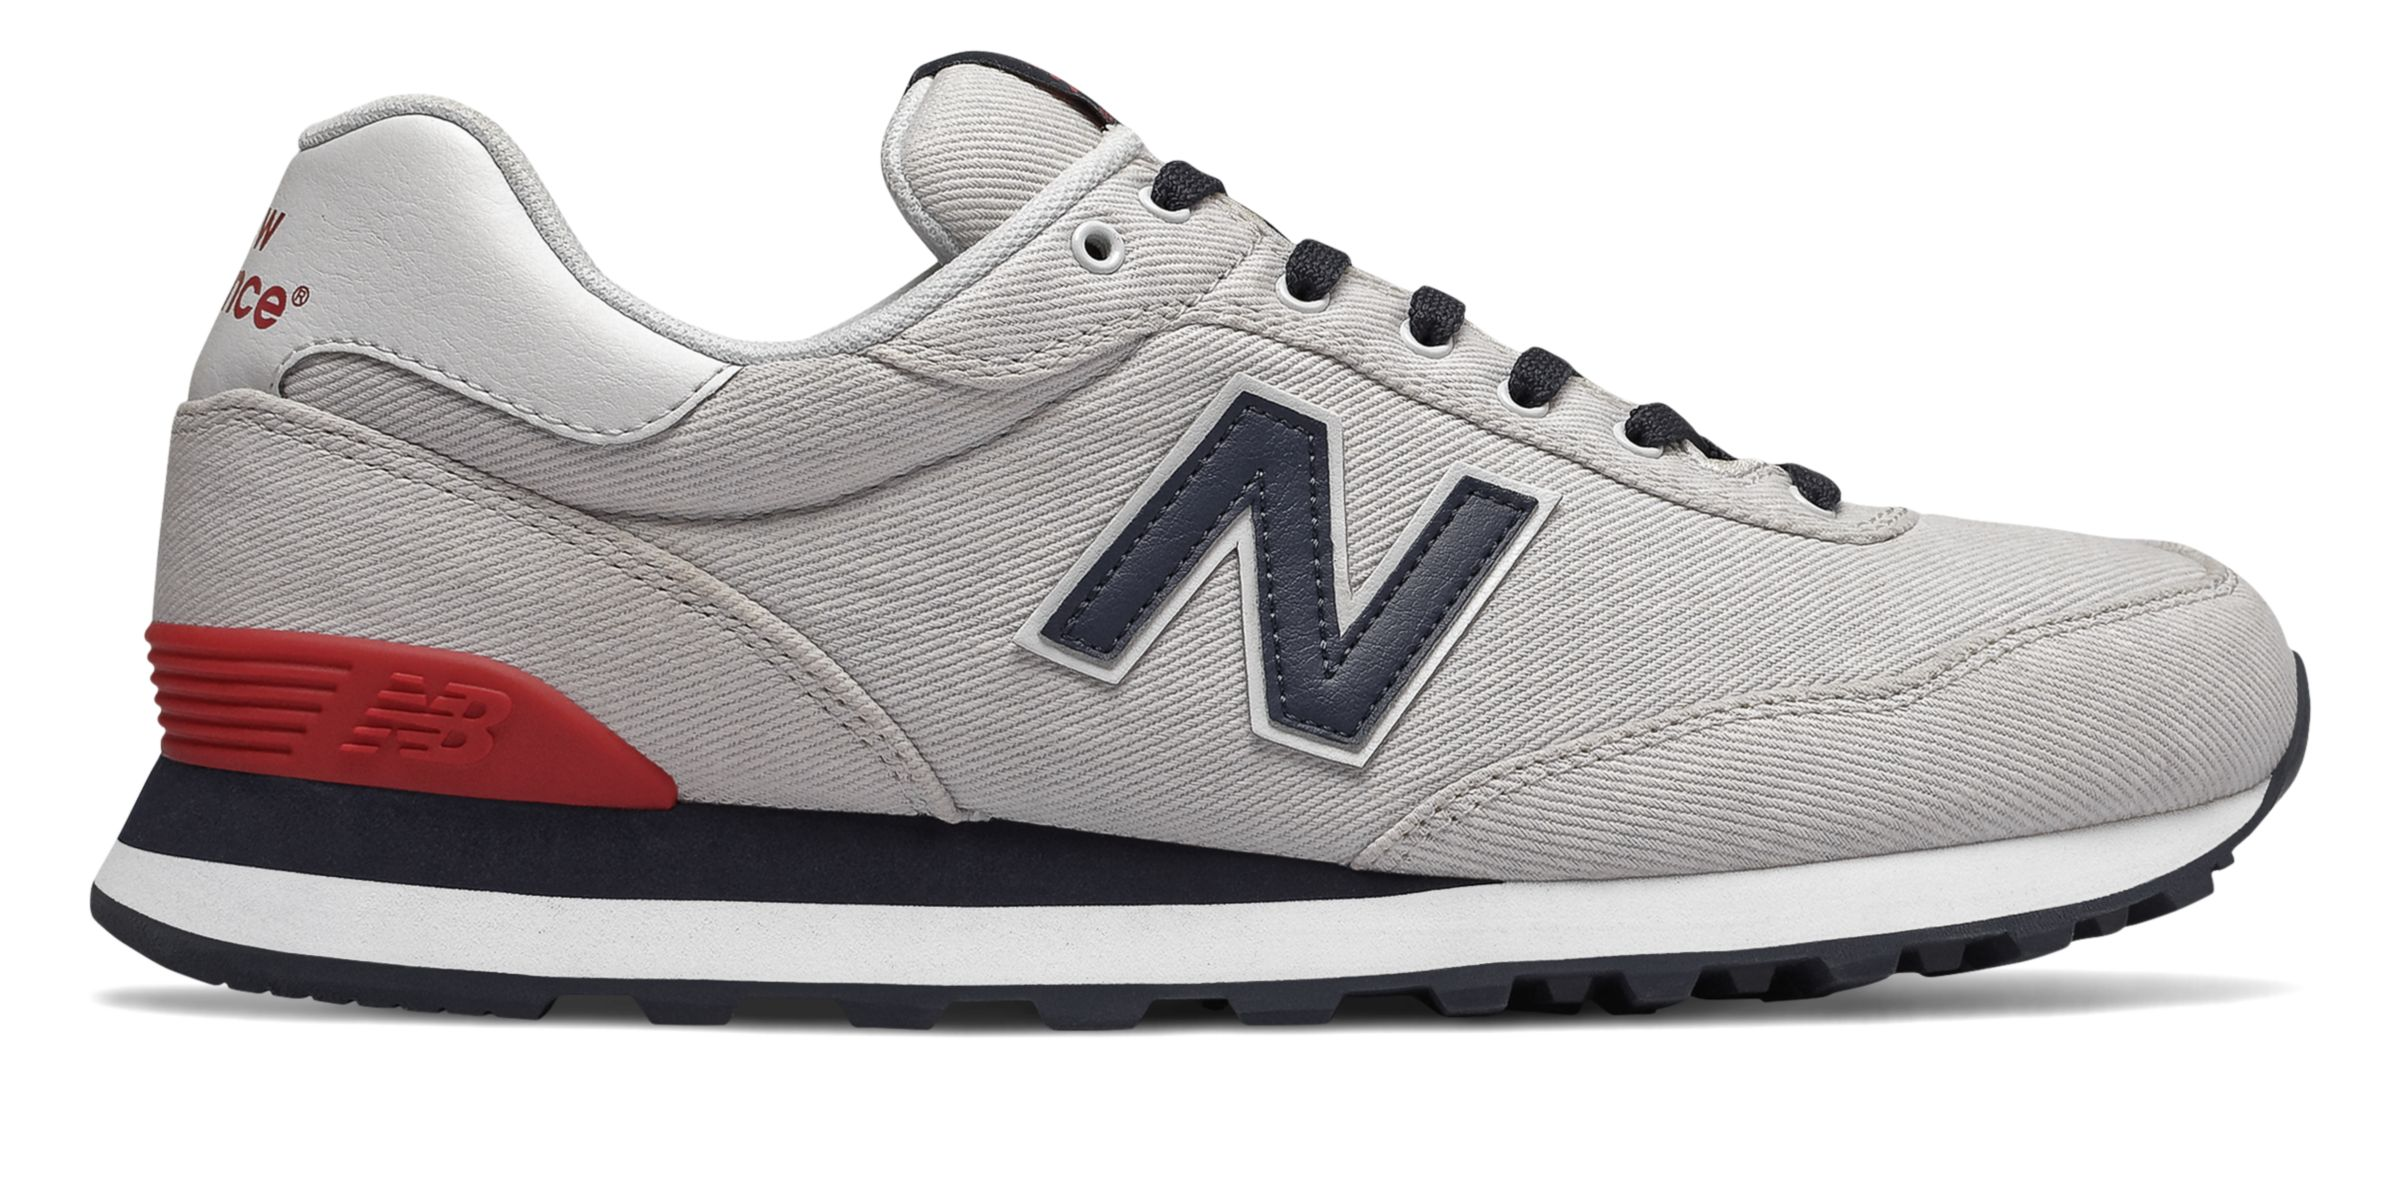 Details about New Balance Men's 515 Shoes Grey With Blue & Red